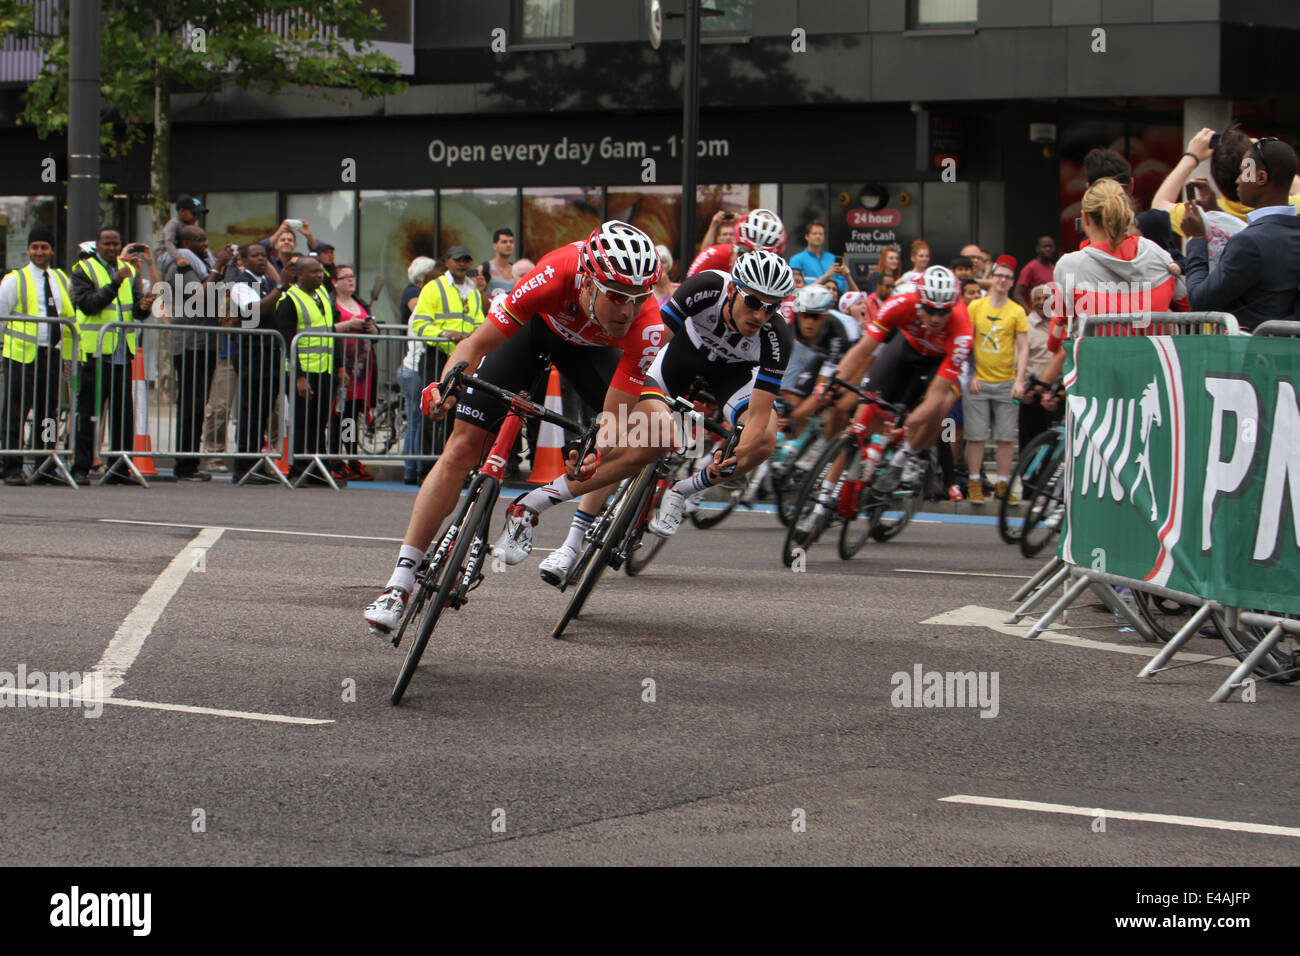 London, UK. 07th July, 2014. Rides make their way through Stratford High  on Stage 3 of the Tour de France via Newham. - Stock Image